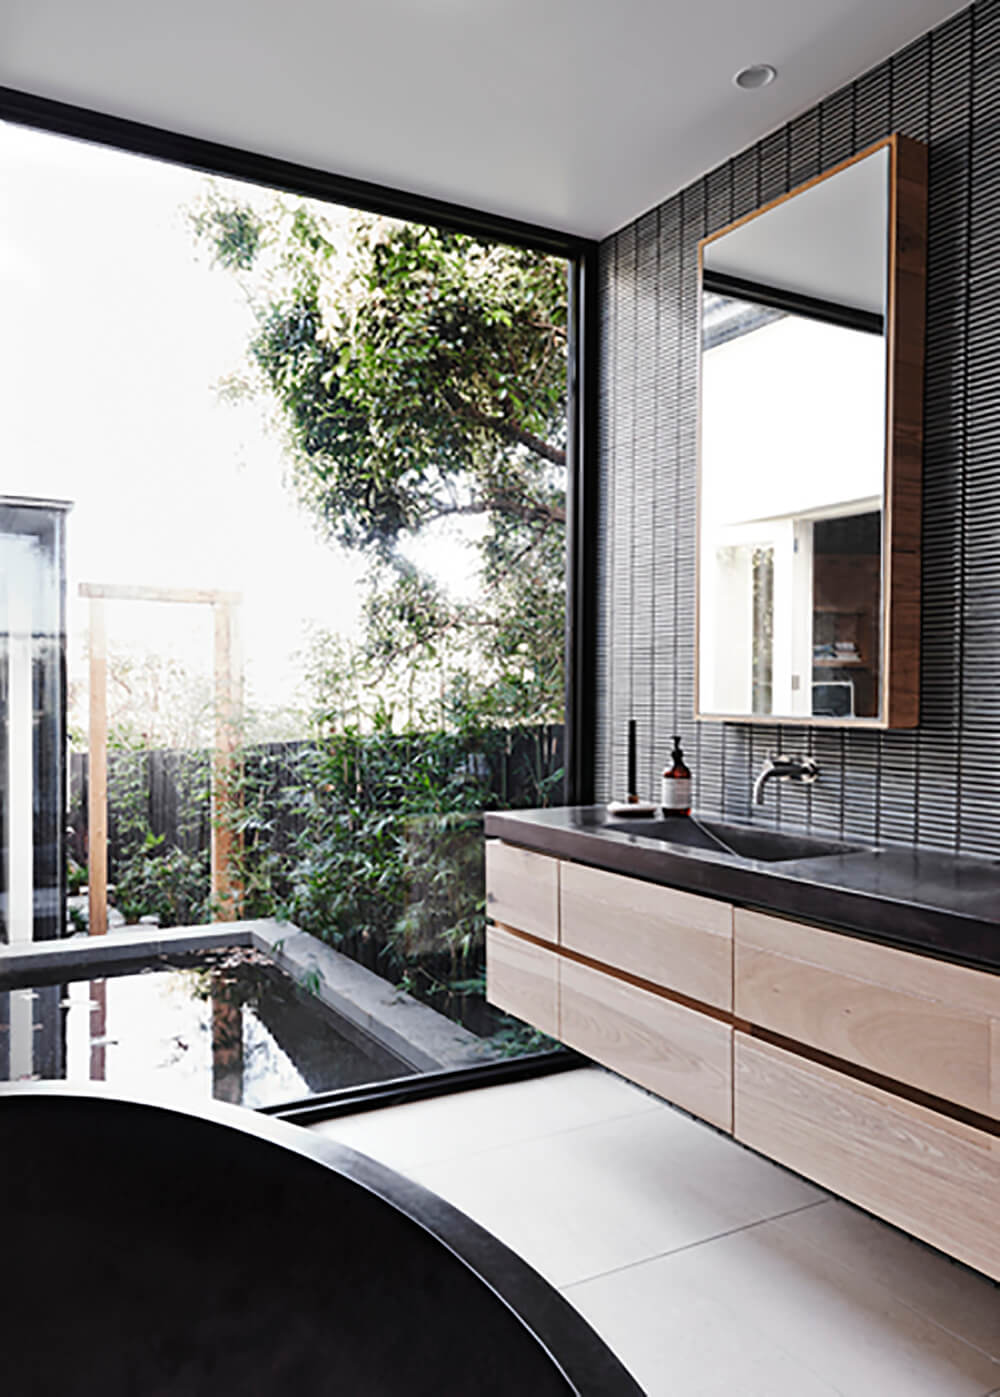 The primary bath features a massive window for expansive views over the landscape. With a floating vanity and large, oval shaped soaking tub, it's a comfortable and handsome space.